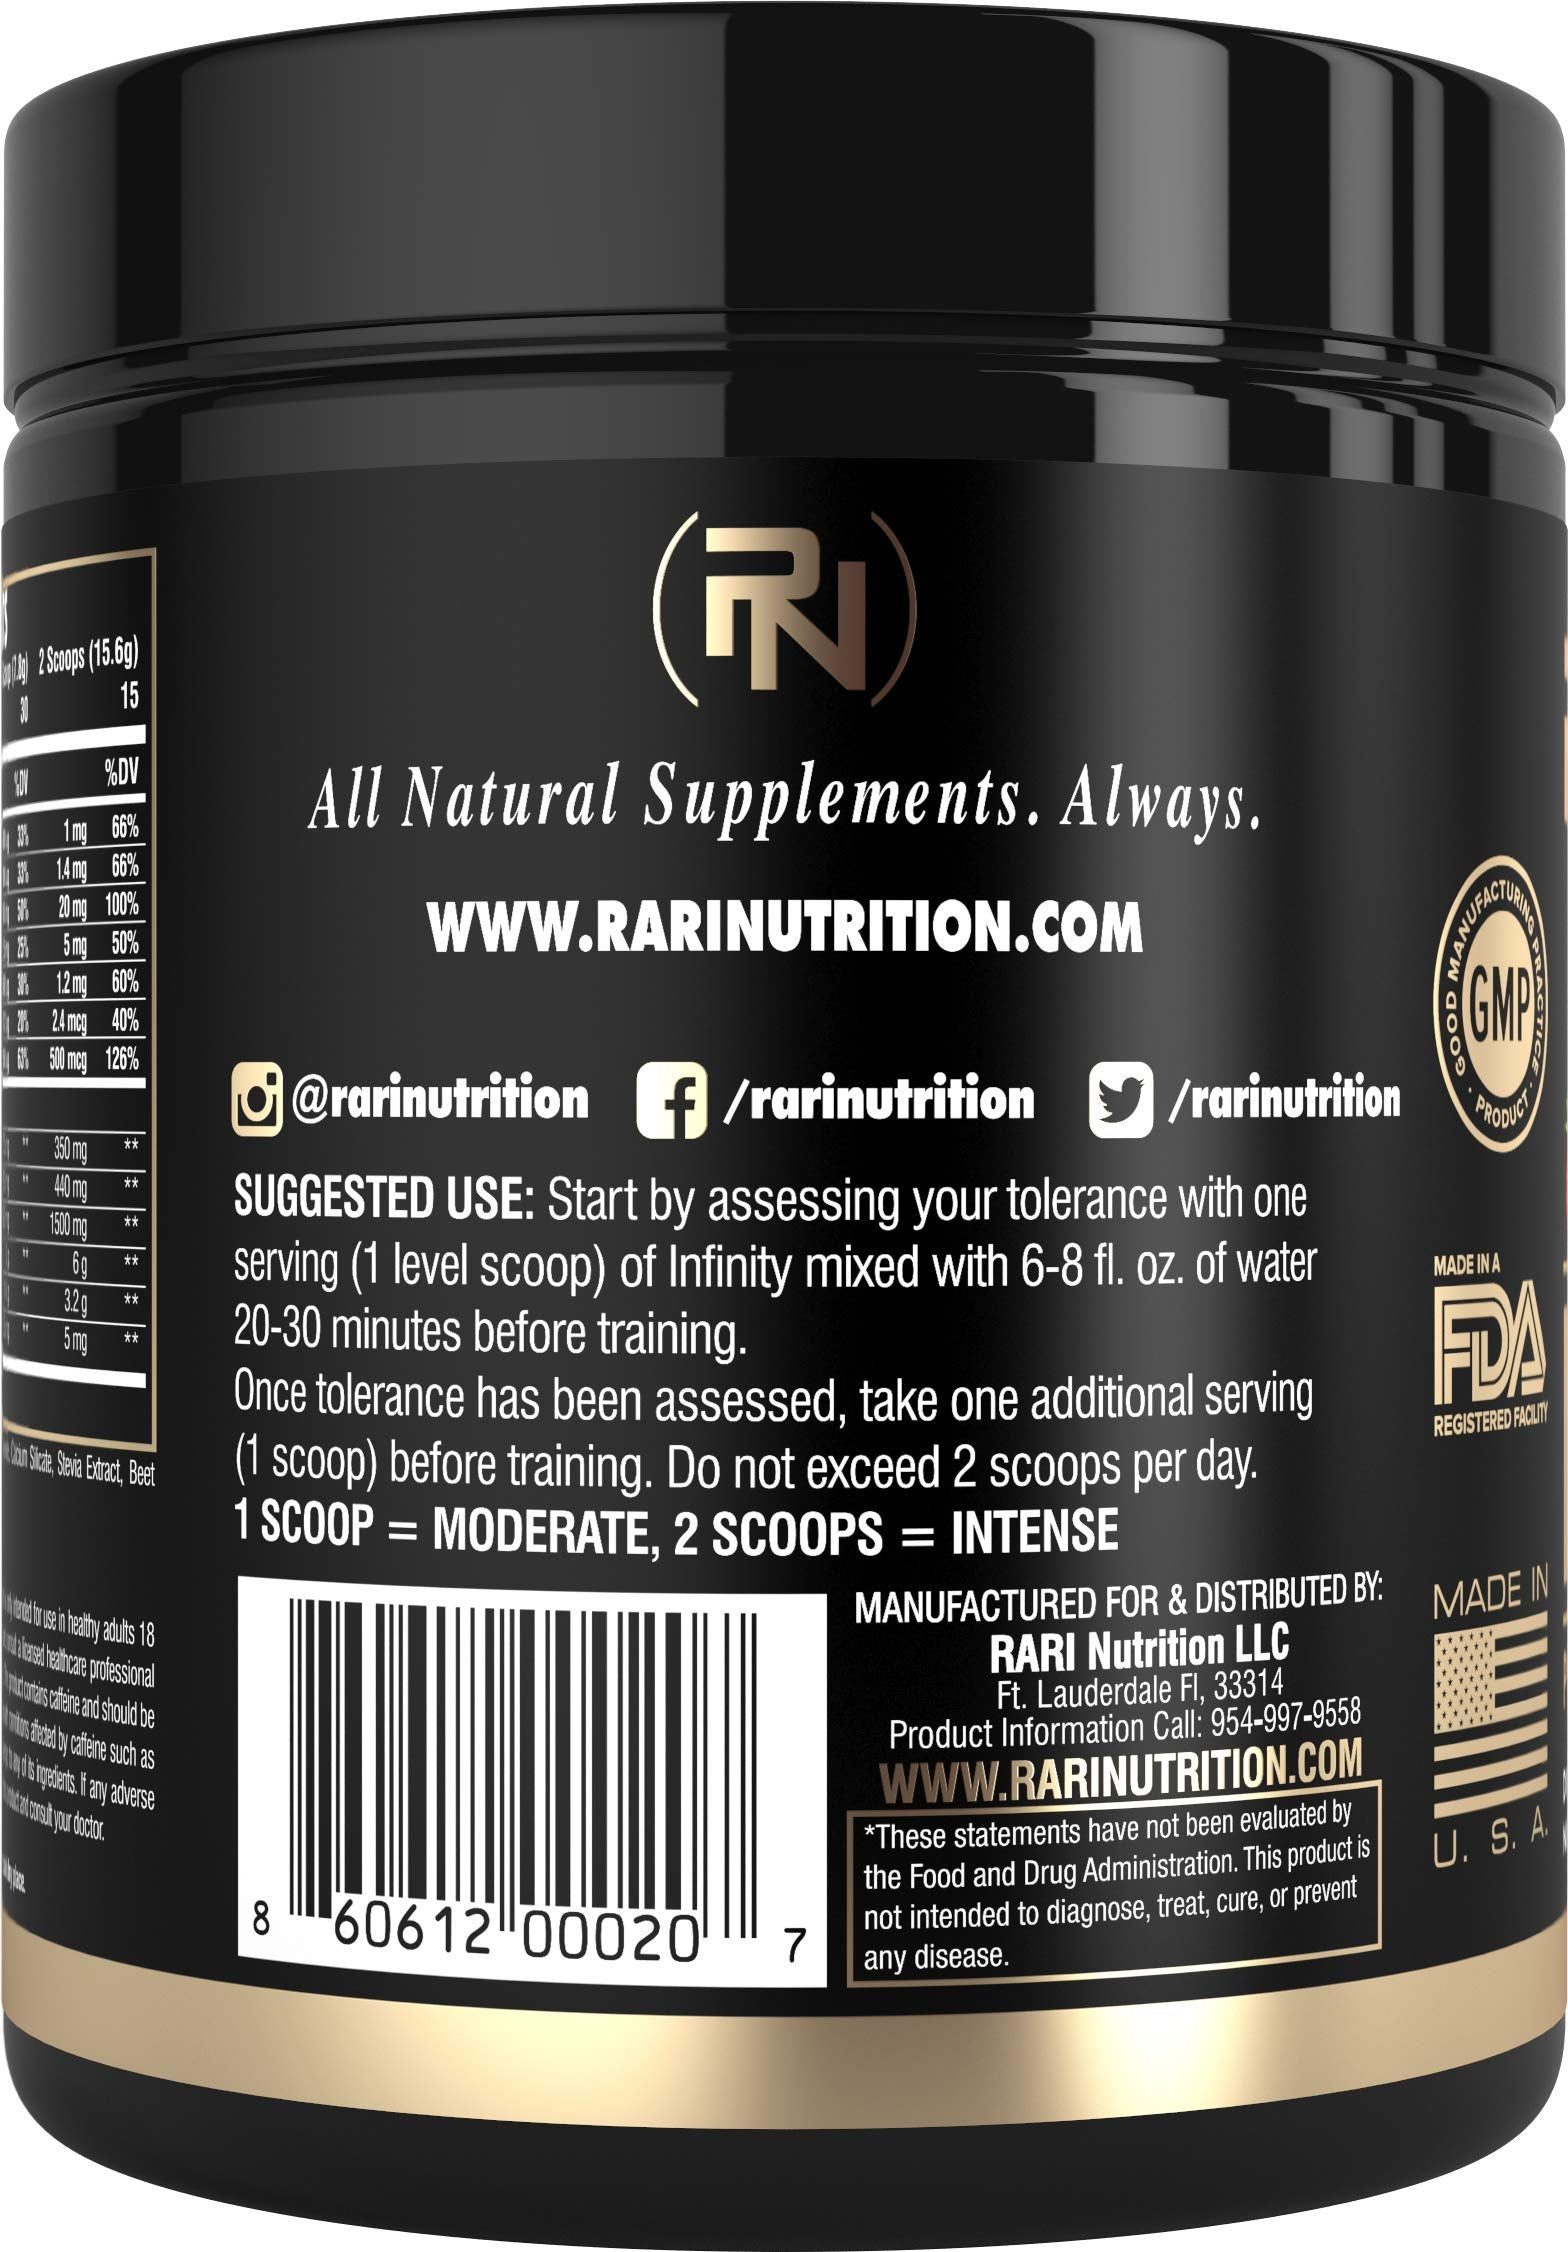 RARI Nutrition - INFINITY Preworkout - 100% Natural Pre Workout Powder - Keto and Vegan Friendly - Energy, Focus, and Performance - Men and Women - No Creatine - 30 Servings (Strawberry Lemonade)